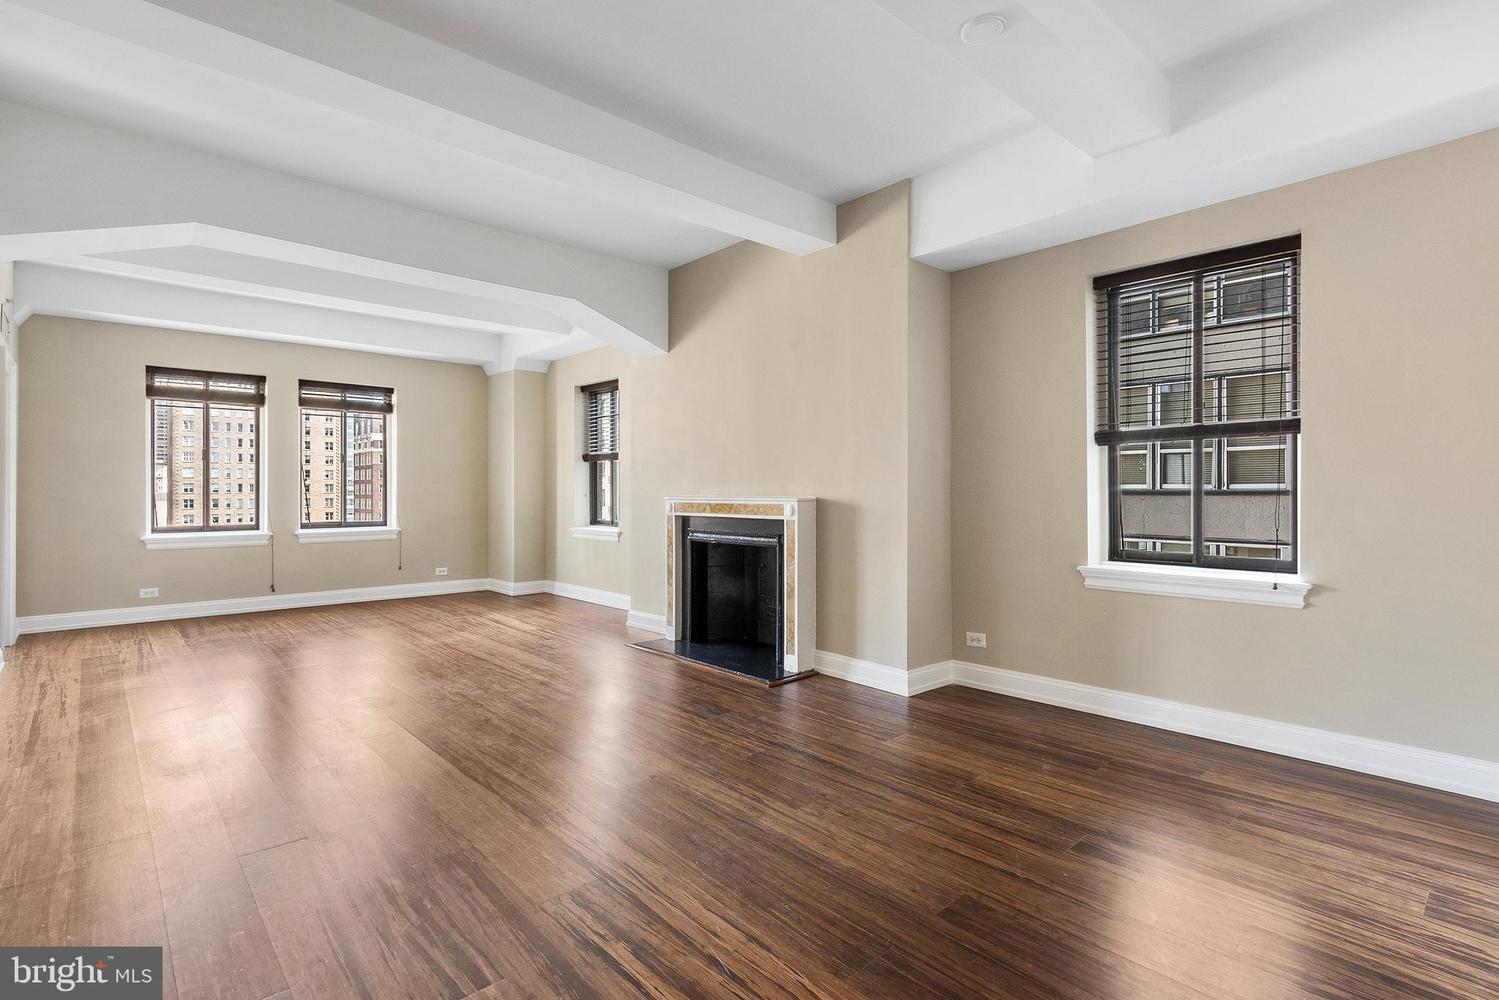 222 West Rittenhouse Square, Unit 1401 Philadelphia, PA 19103